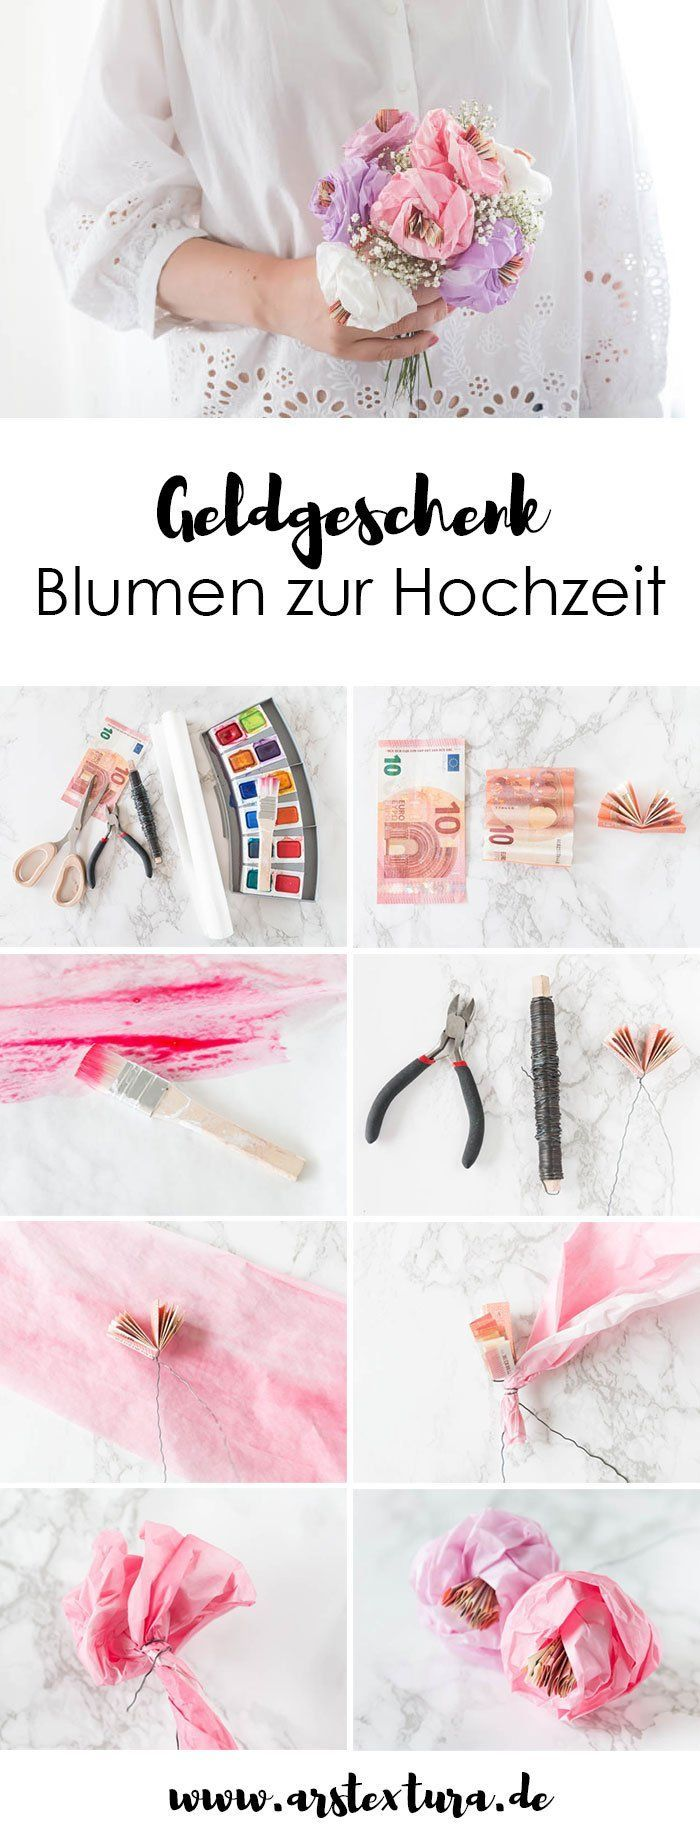 Money present for the wedding – making flowers out of paper